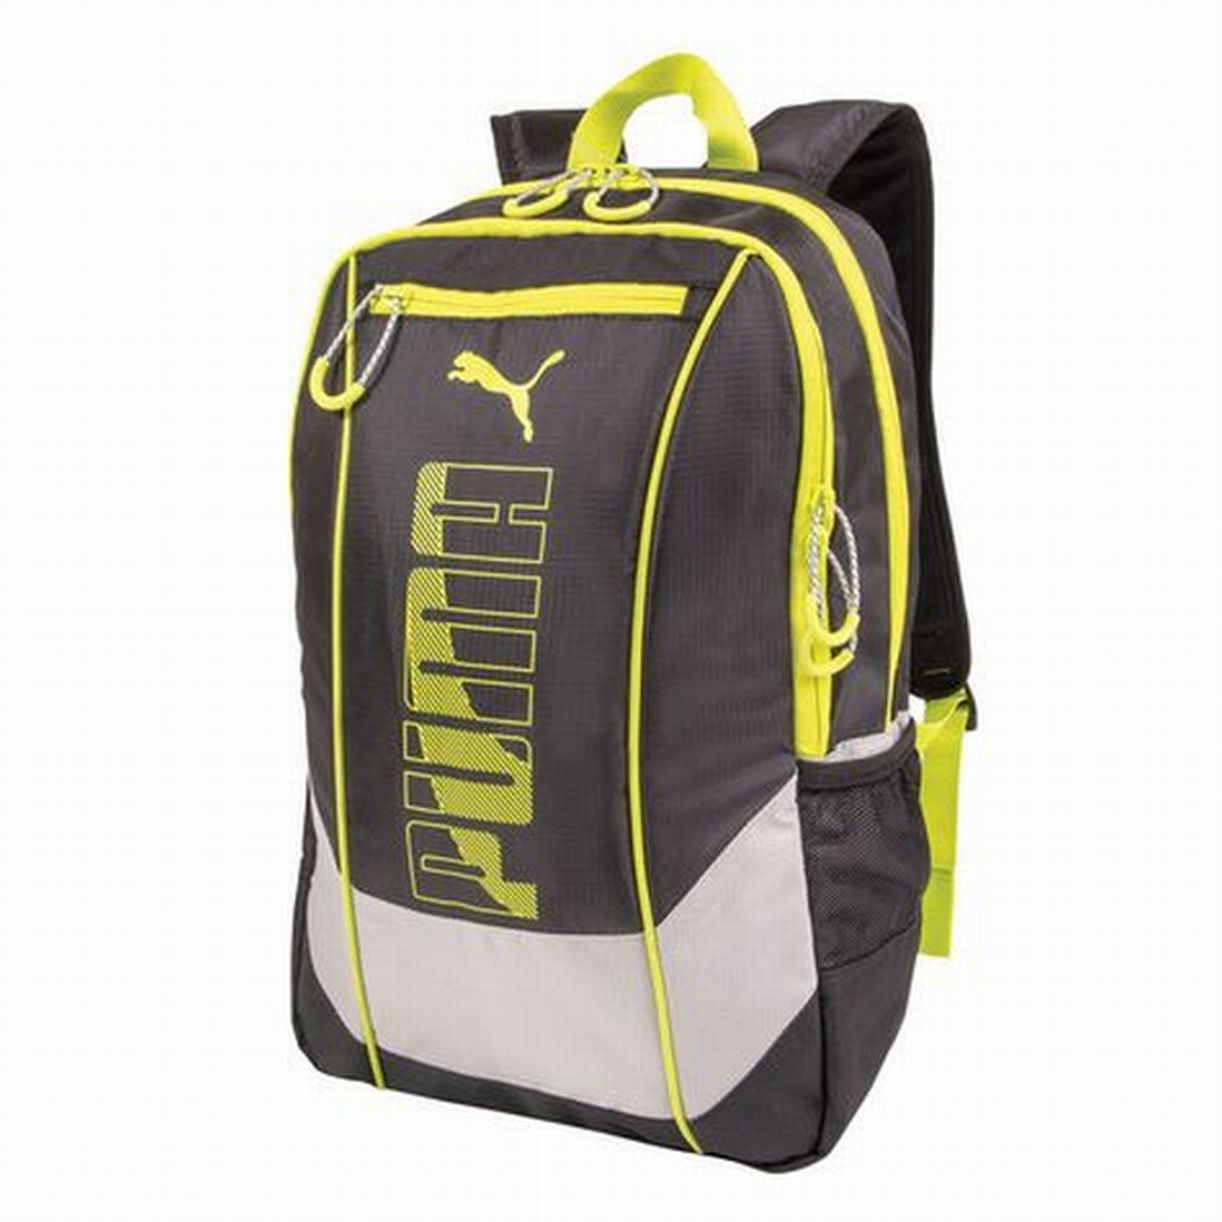 Puma Mens Sweeper 2.0 Backpack with Padded Laptop Sleeve Sport School Travel